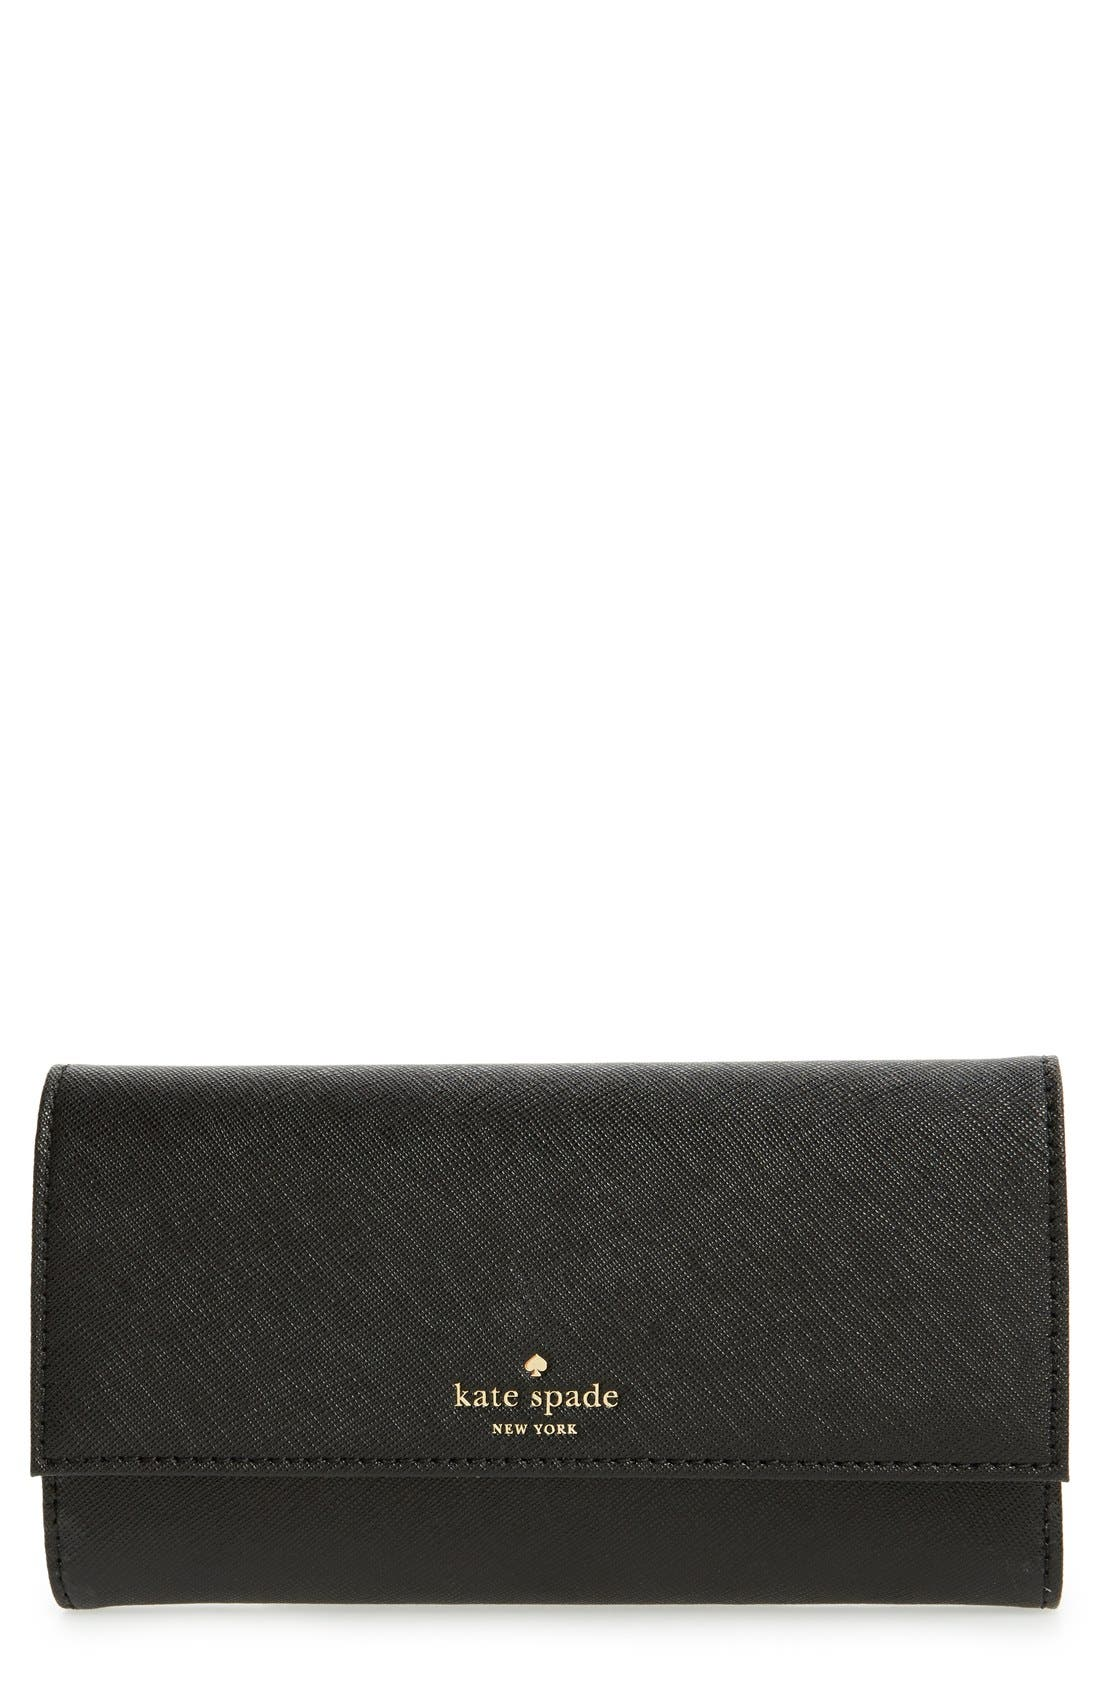 Alternate Image 1 Selected - kate spade new york iPhone 6/6s wallet